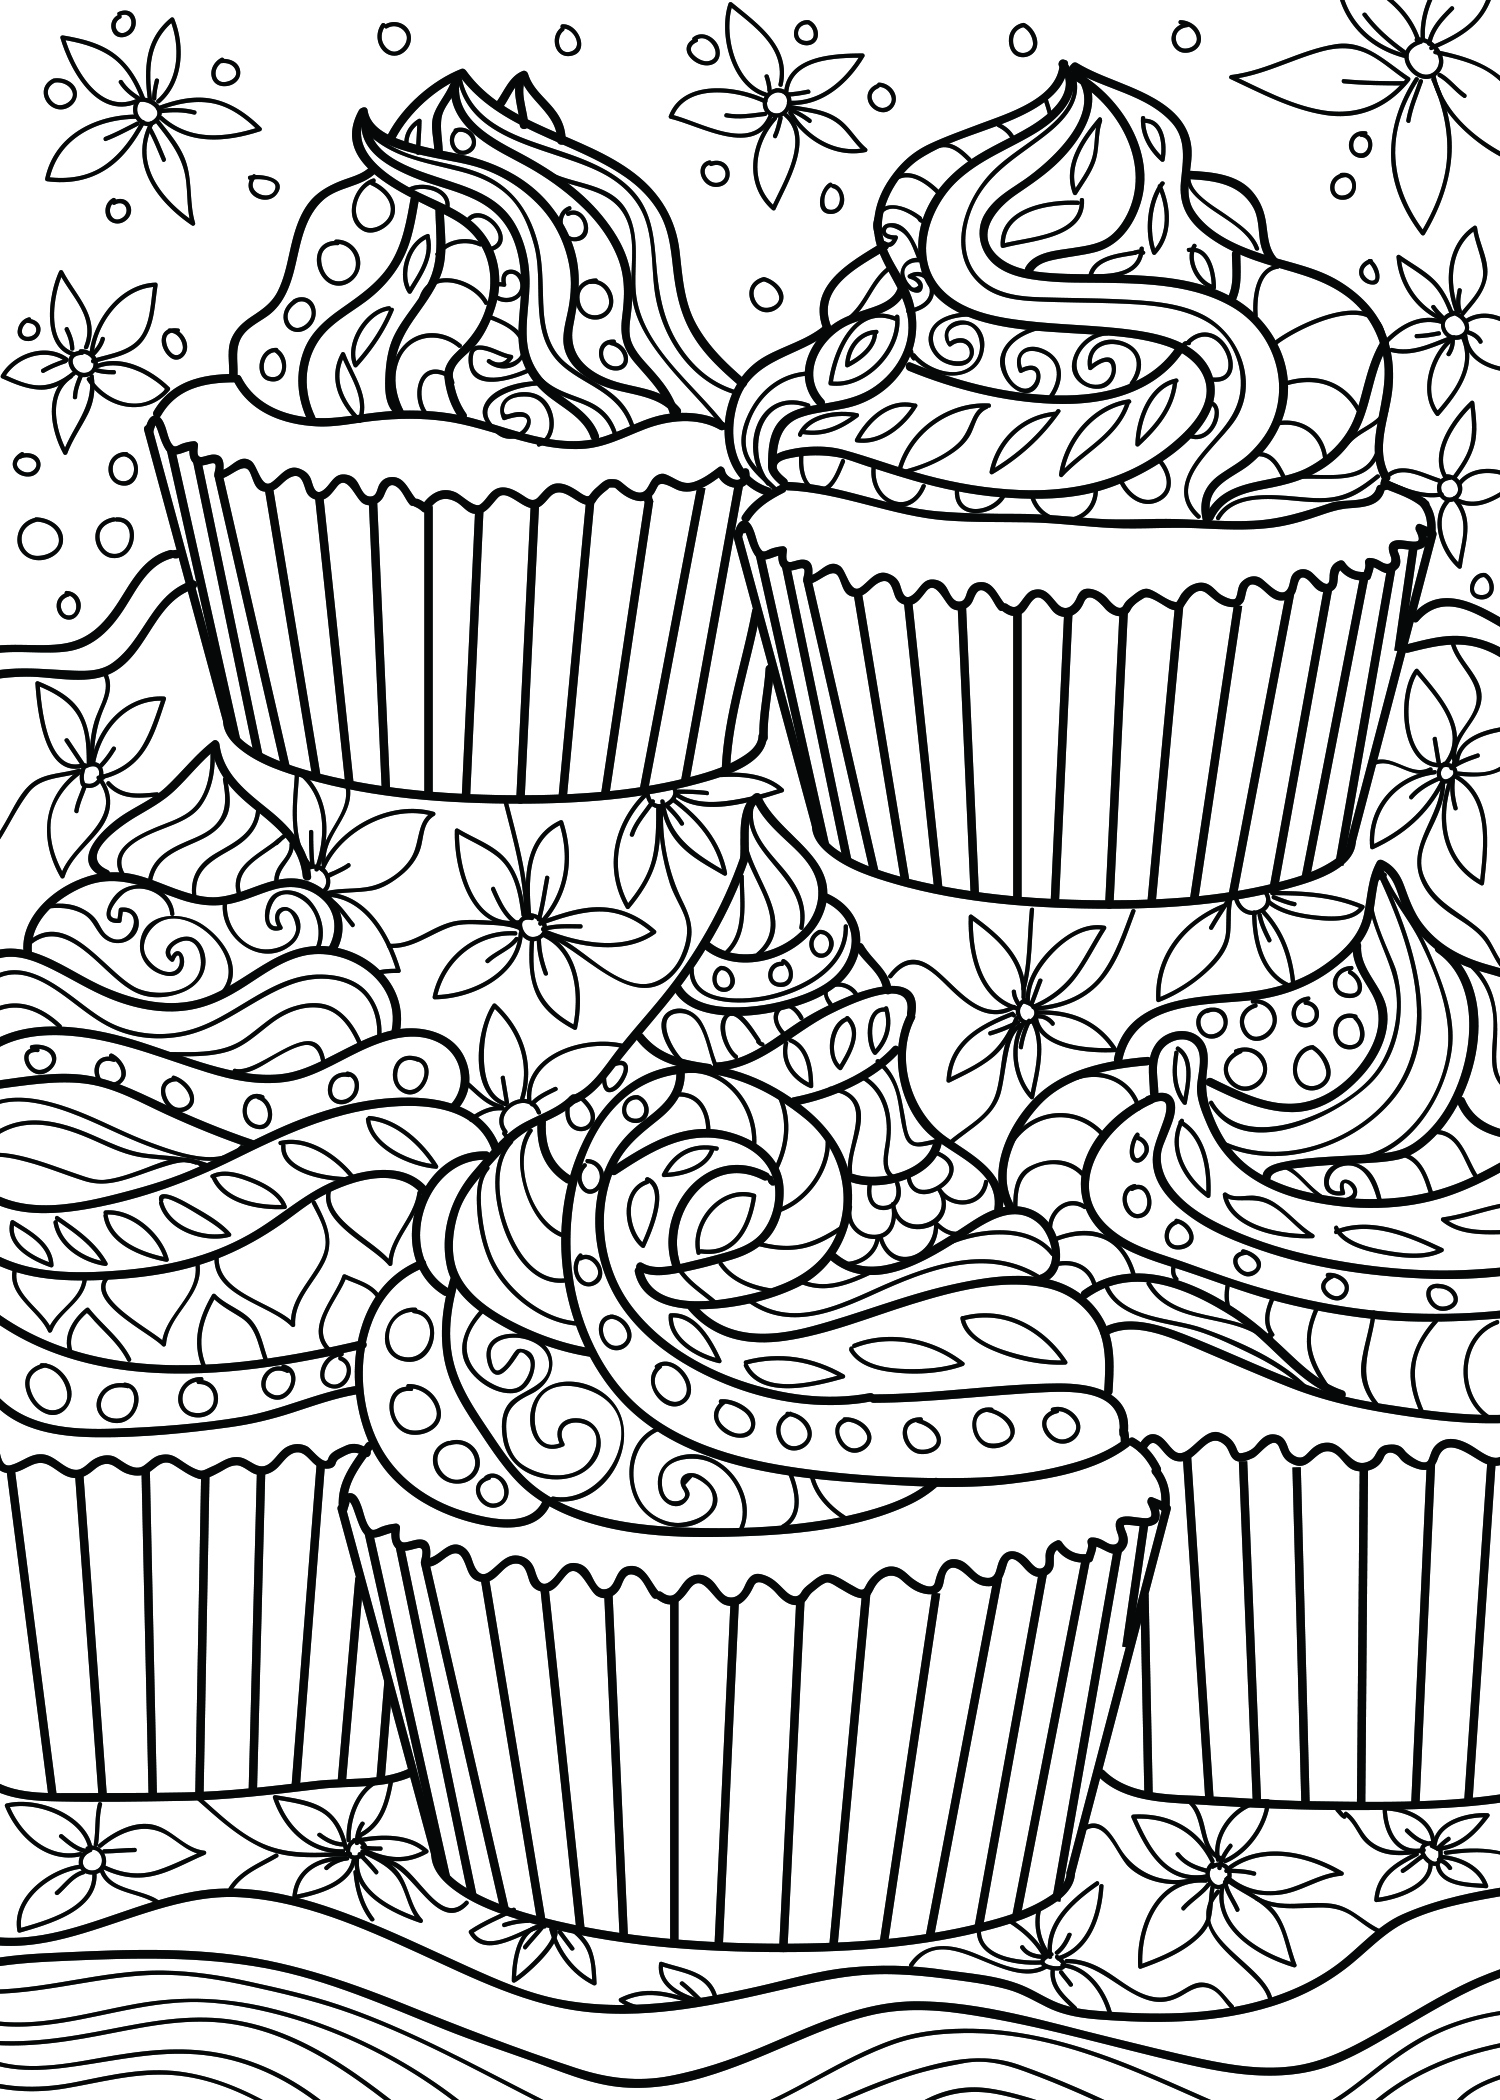 Cupcake Coloring Pages For Adults : Cupcake Coloring Page - Coloring Home